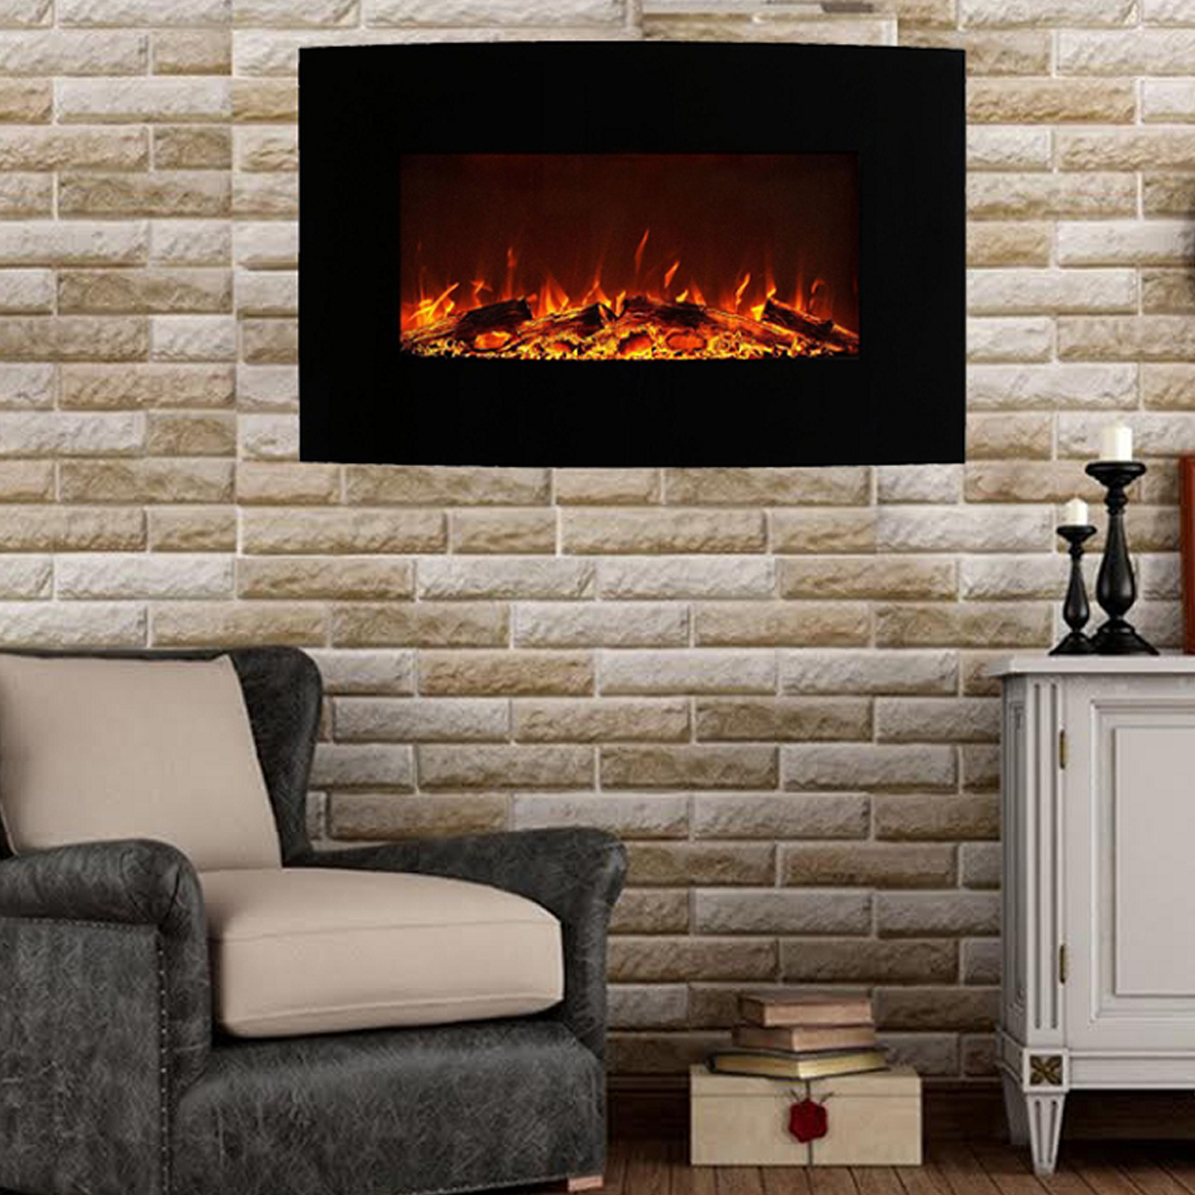 Wall Mount Fireplace Heaters Madison 35 Inch Ventless Heater Electric Wall Mounted Fireplace Log